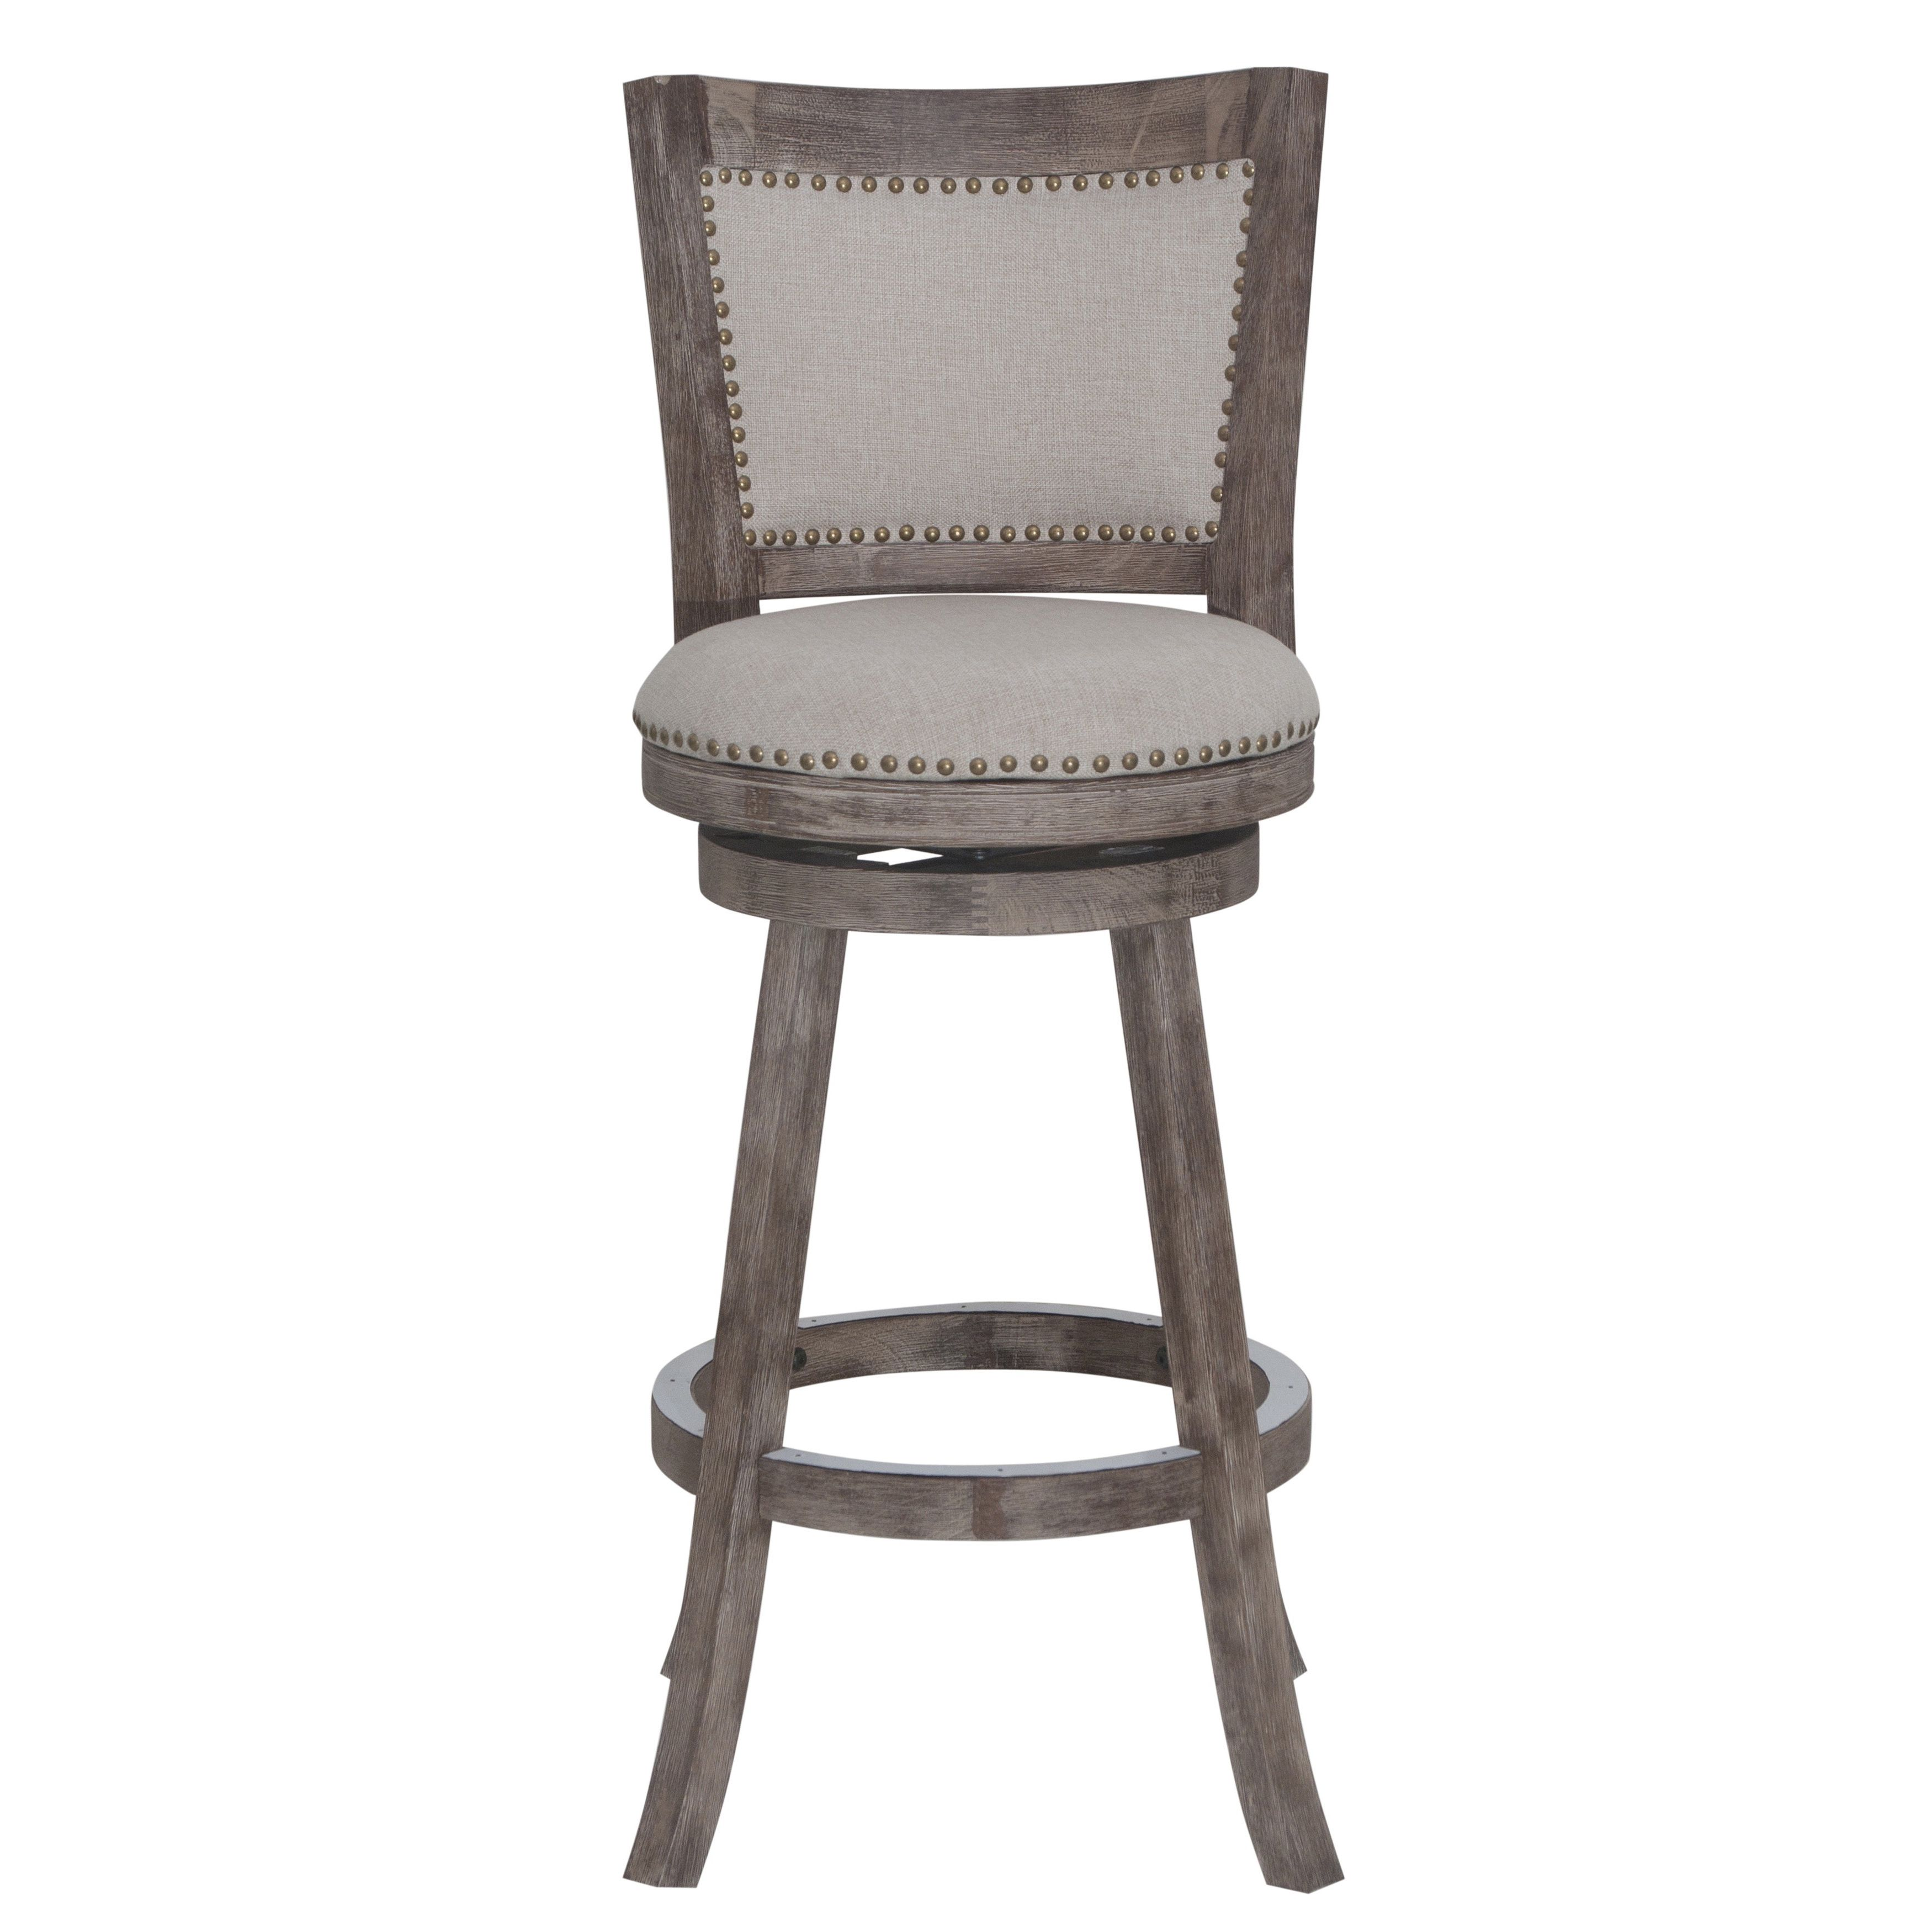 Make A Statement With The Melrose Barstool Accentuated